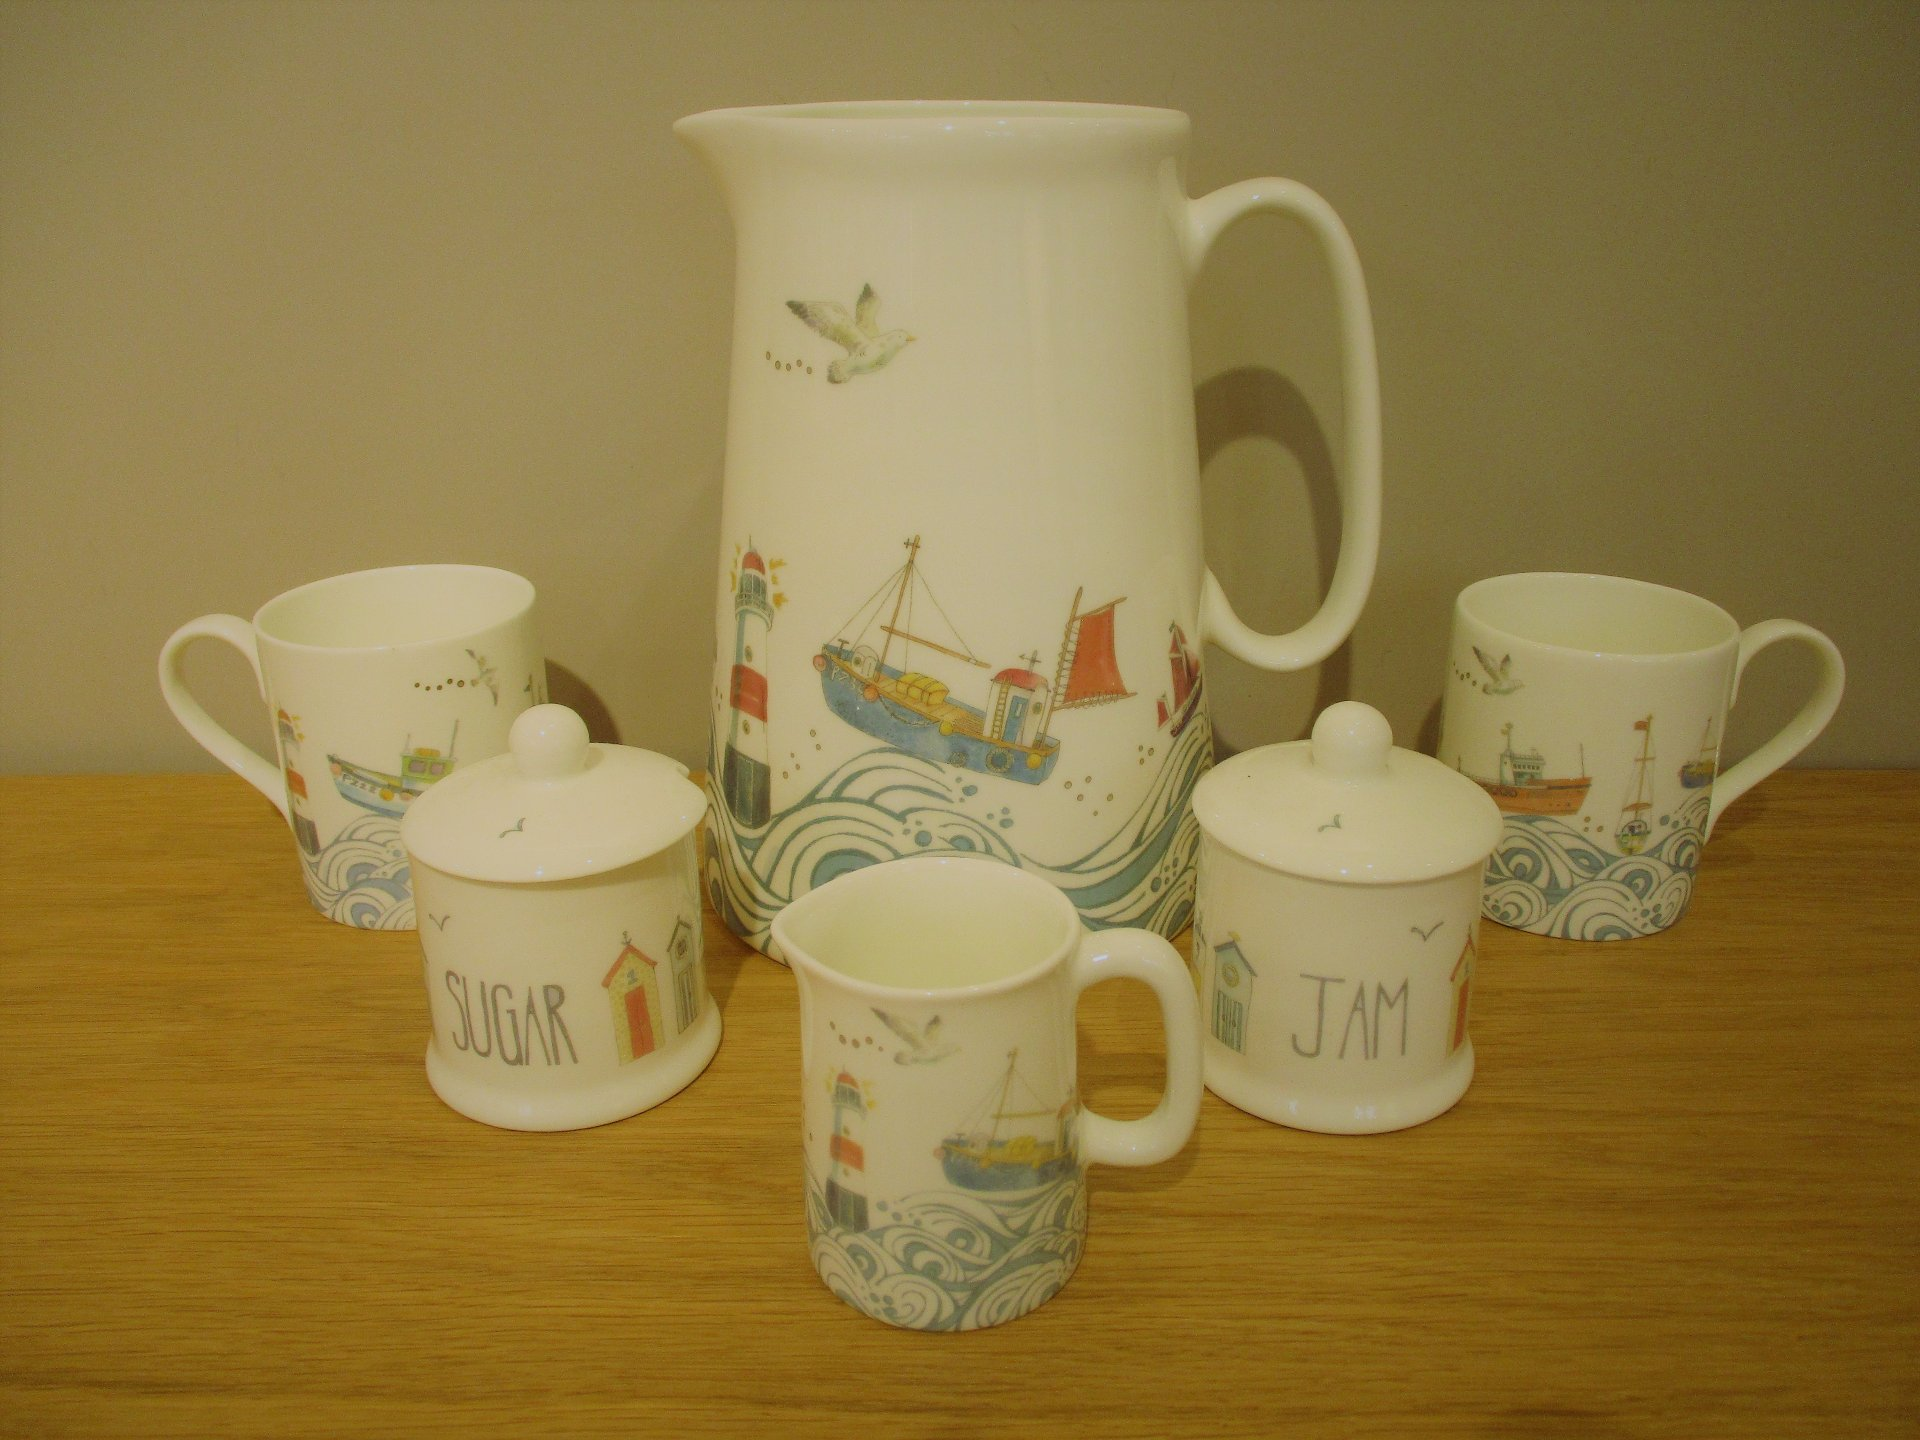 Selection of beach themed ceramics which include beautiful beach hut and sea wave designs